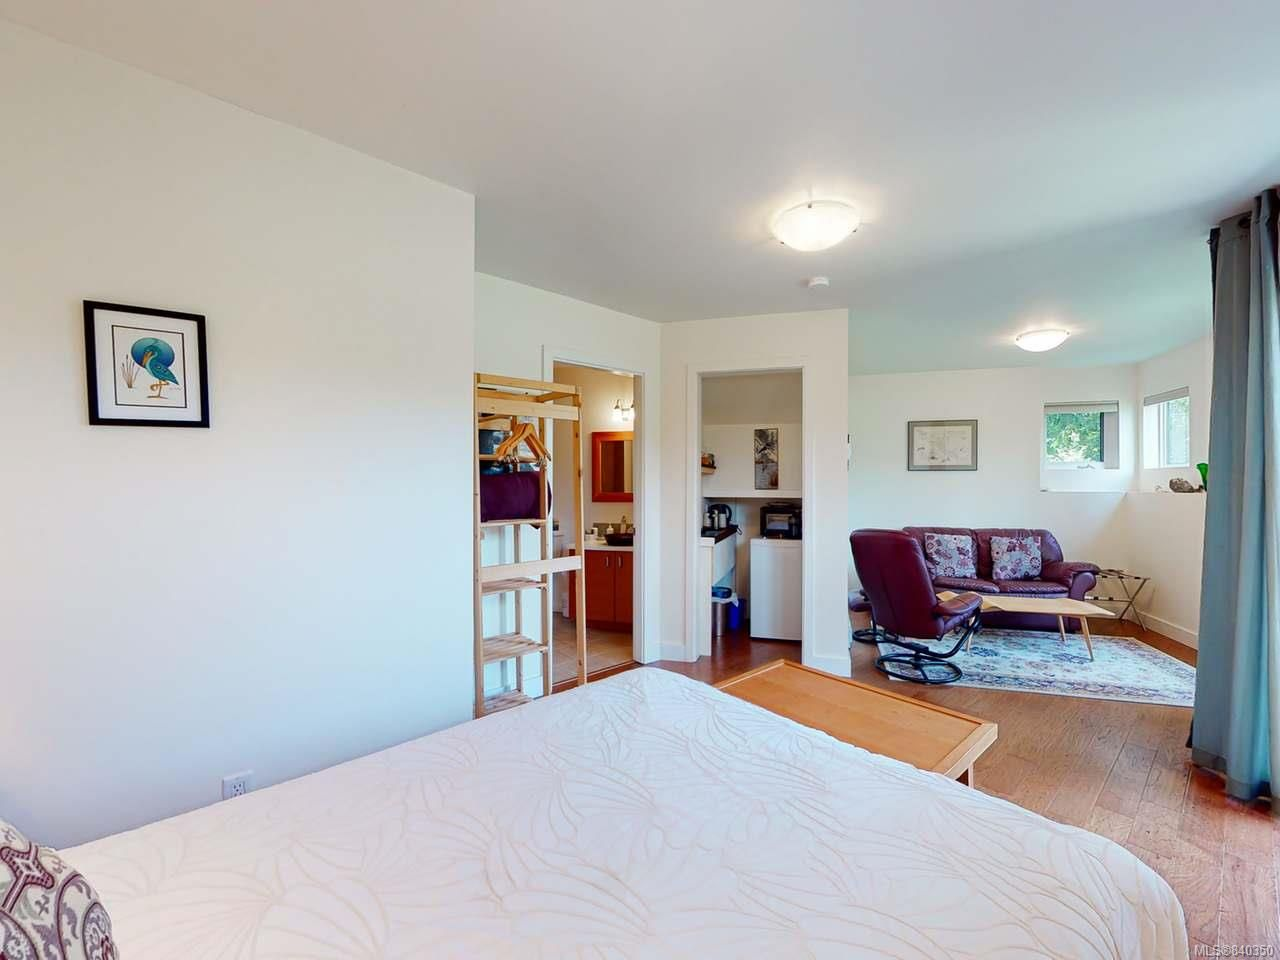 Photo 43: Photos: 1068 Helen Rd in UCLUELET: PA Ucluelet House for sale (Port Alberni)  : MLS®# 840350